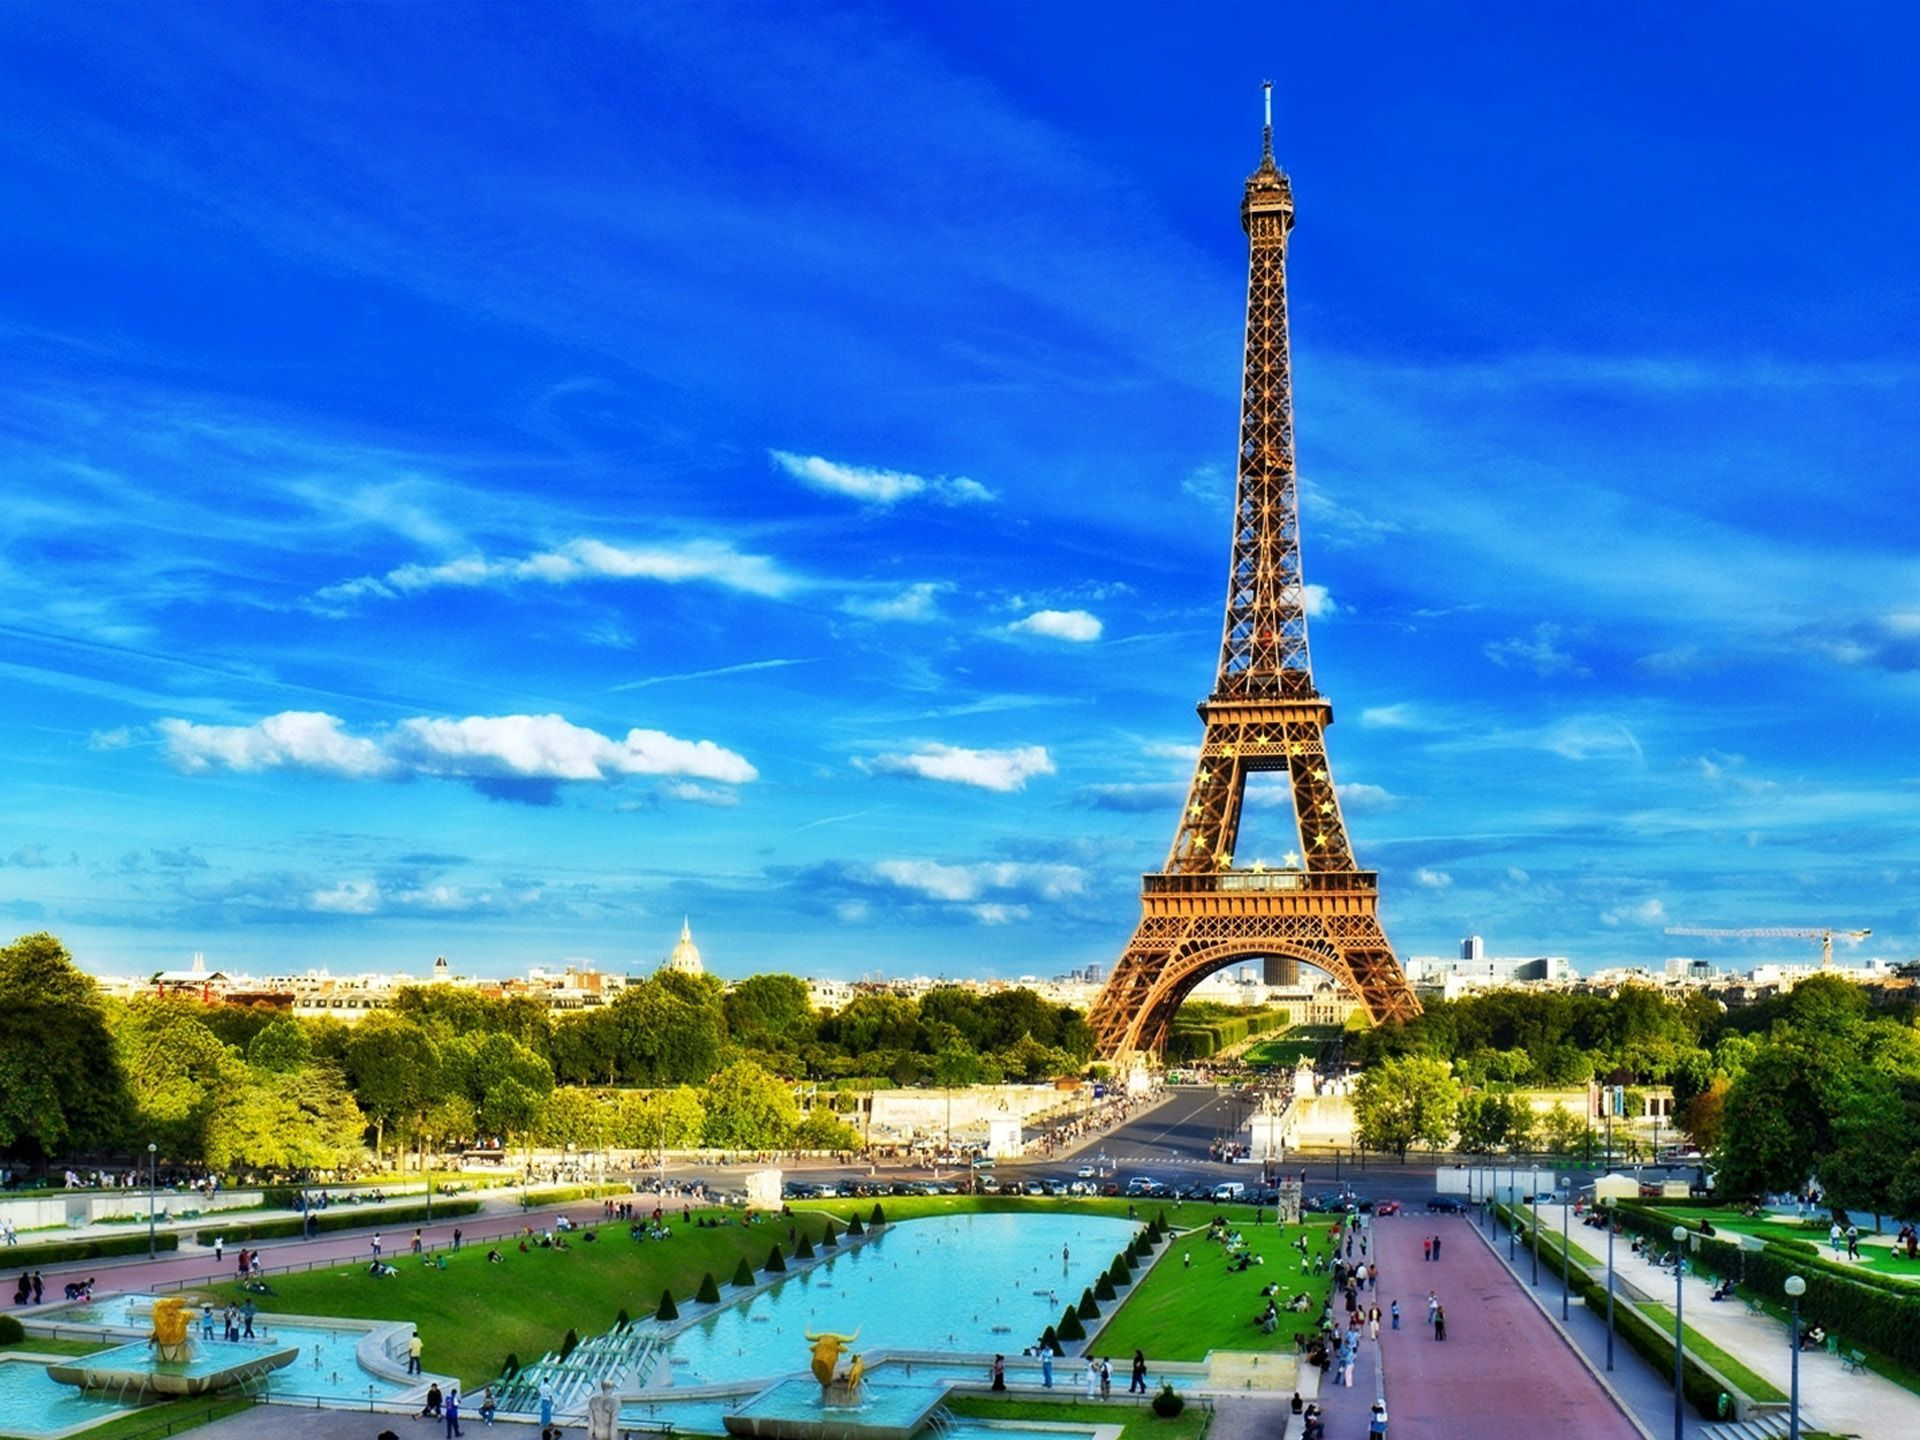 The Eiffel Tower is an iron lattice tower located on the